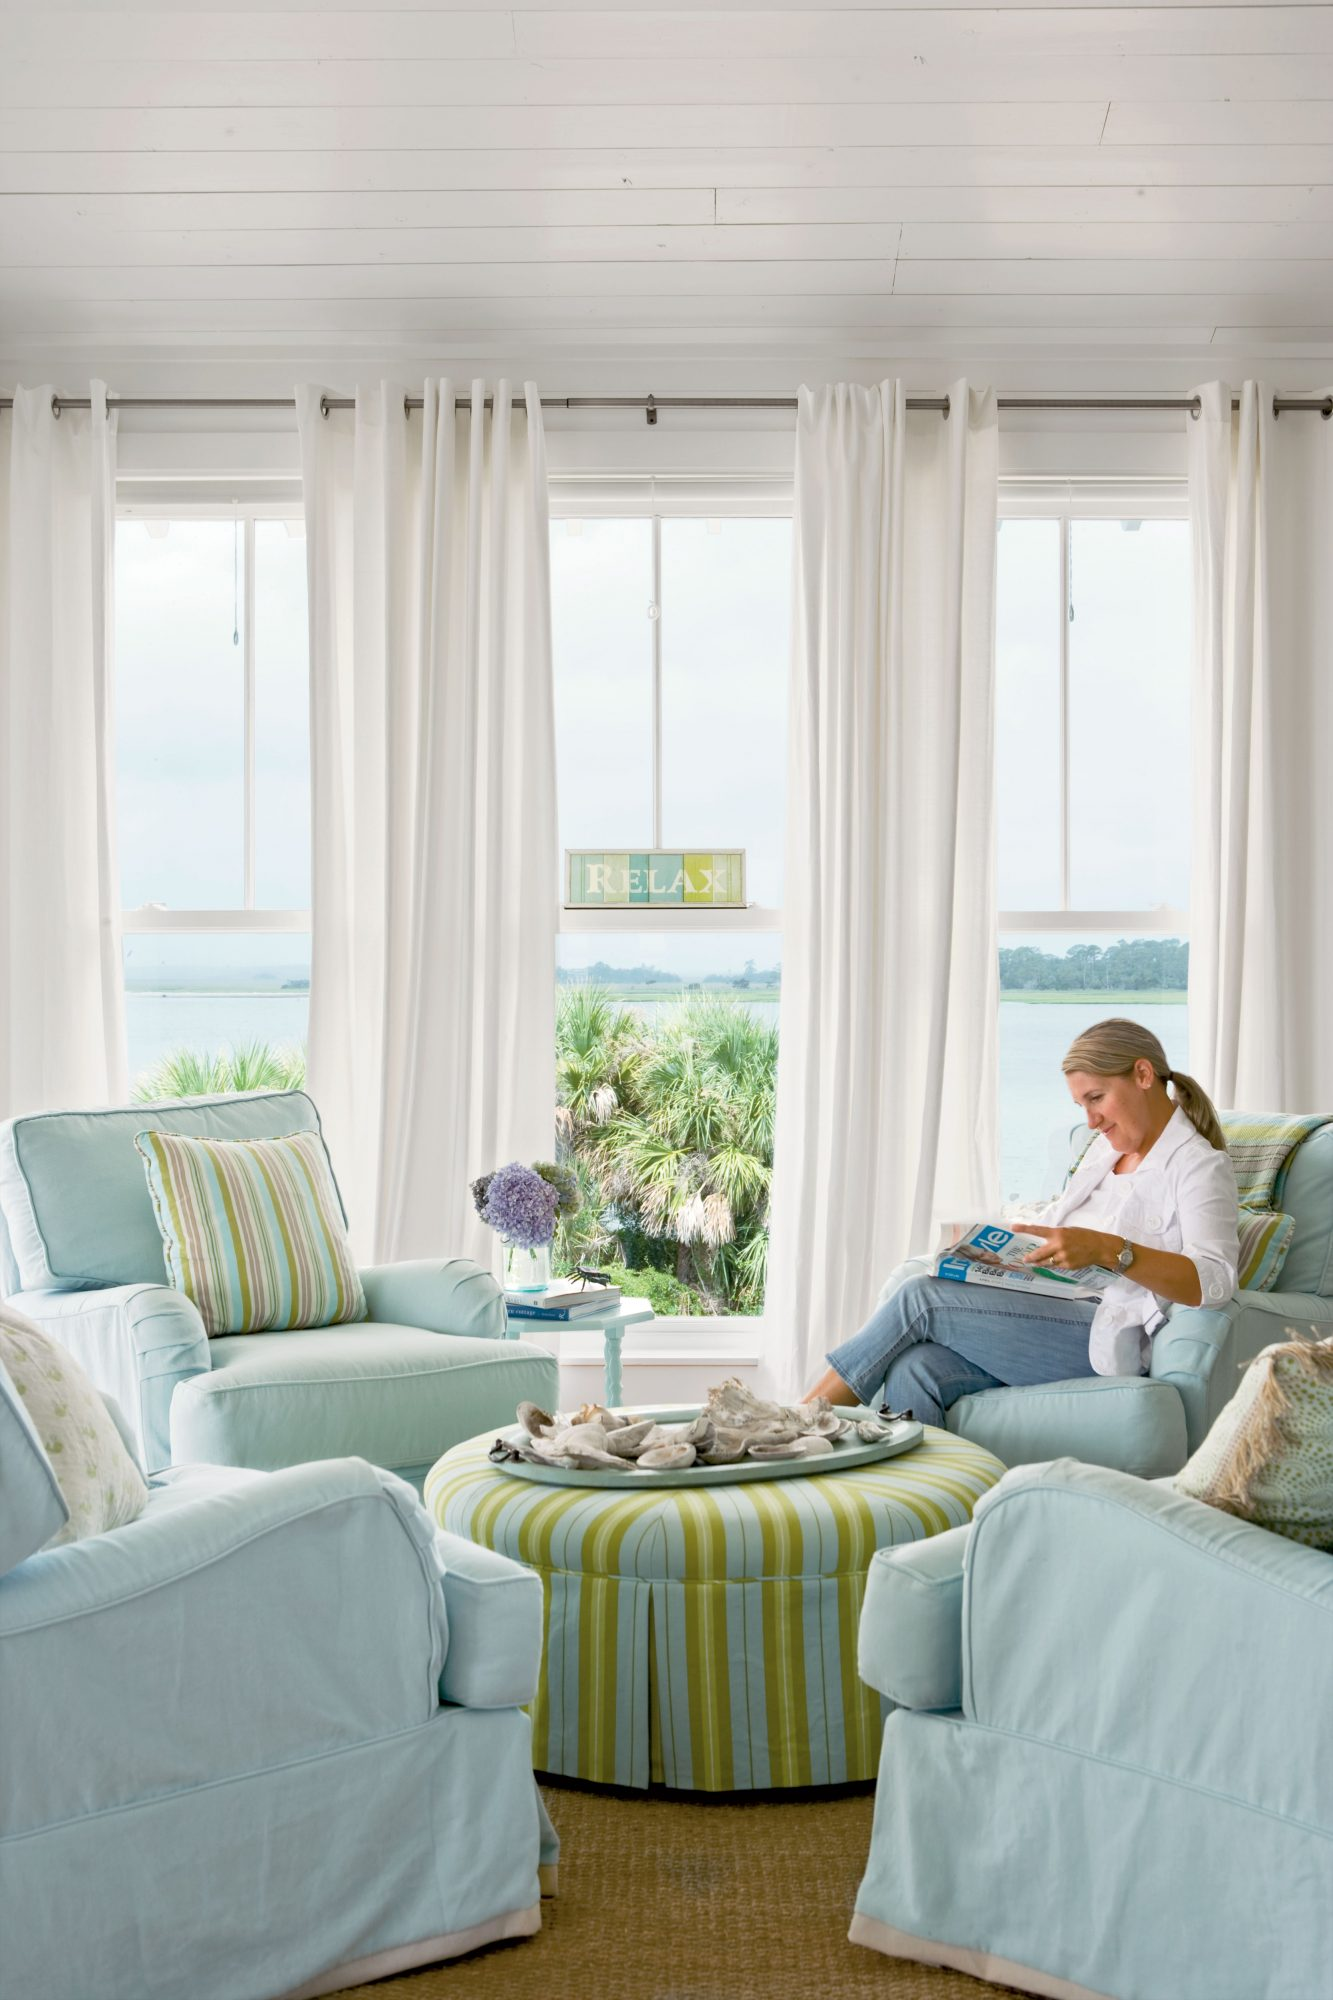 This serene living room came together in a wash of pastels. To promote conversation, designer Jane Coslick opted for four chairs instead of the traditional sofa-centered seating arrangement; she repeated fabric from the dining room on the round ottoman to unify the look of the adjacent rooms.